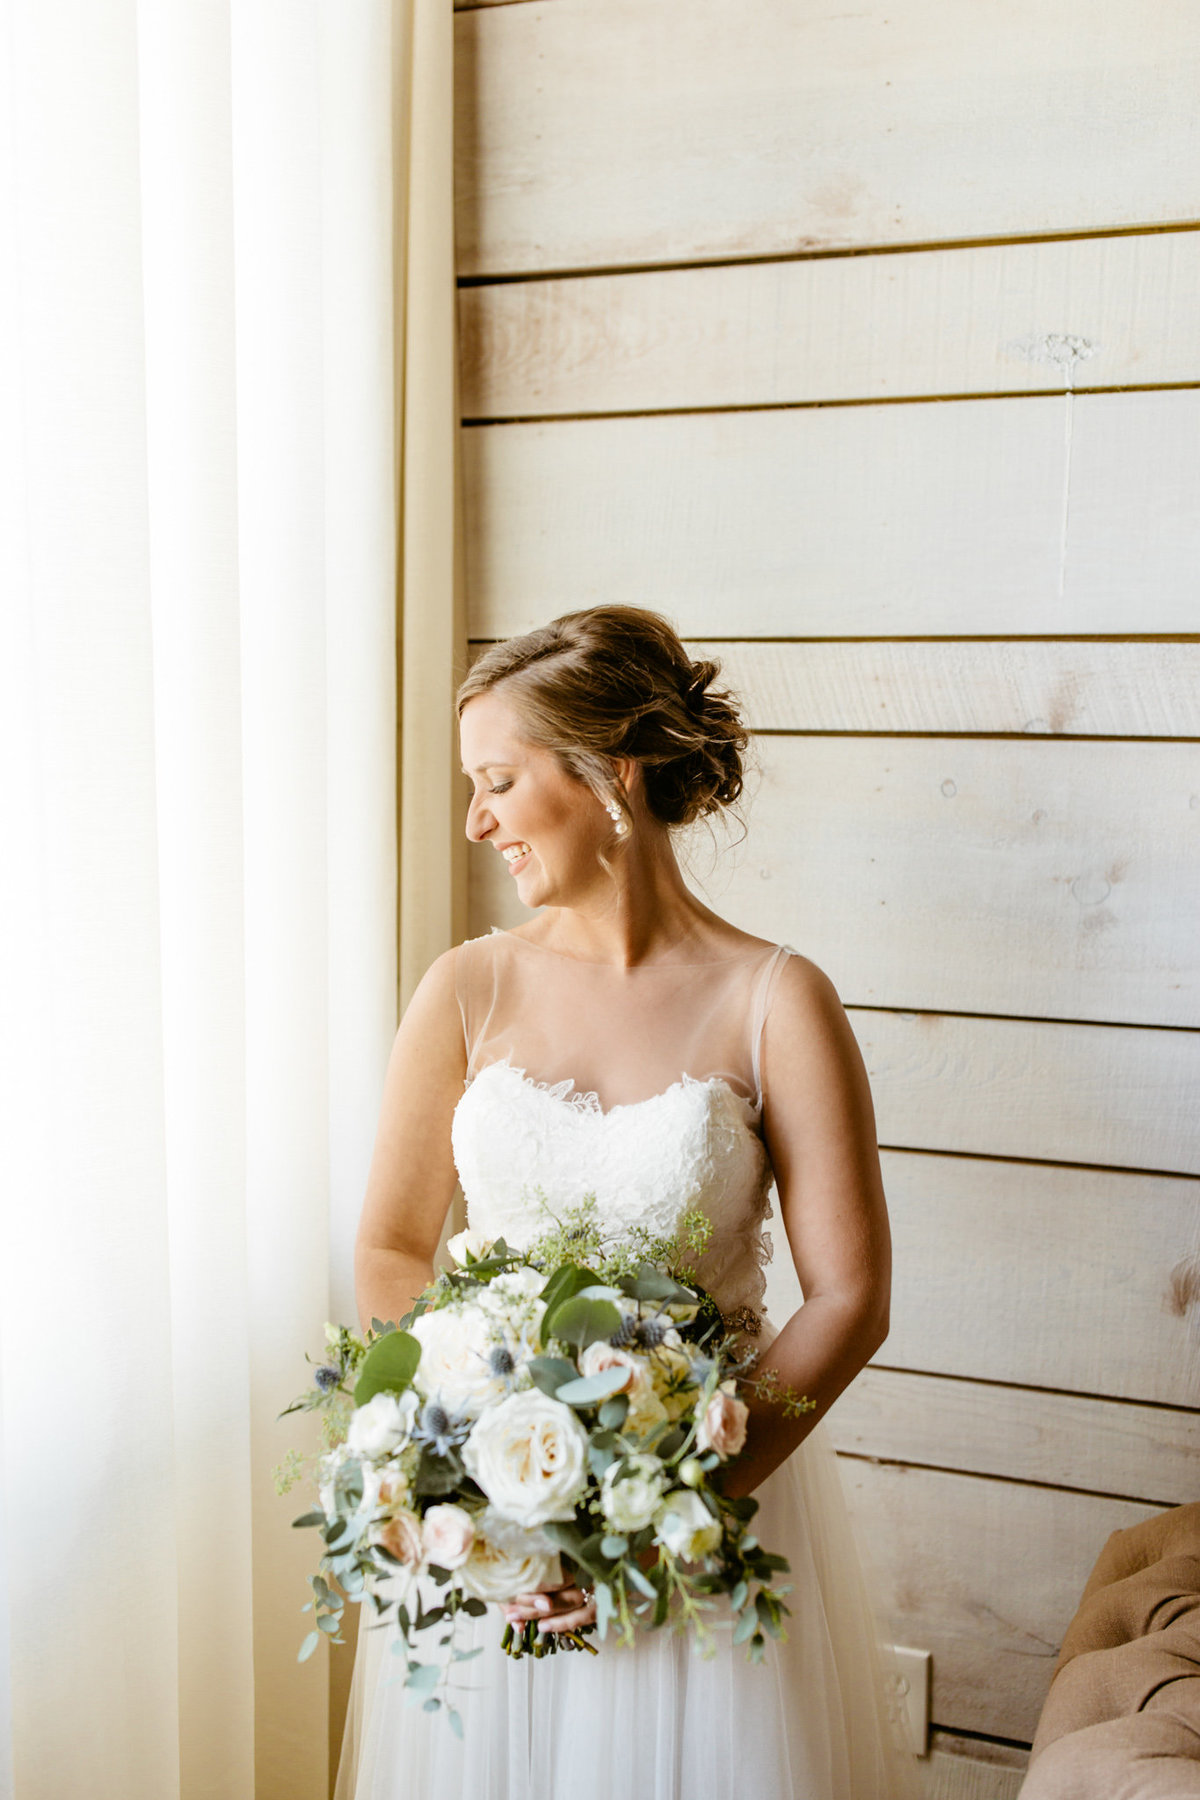 Alexa-Vossler-Photo_Dallas-Wedding-Photographer_North-Texas-Wedding-Photographer_Stephanie-Chase-Wedding-at-Morgan-Creek-Barn-Aubrey-Texas_69